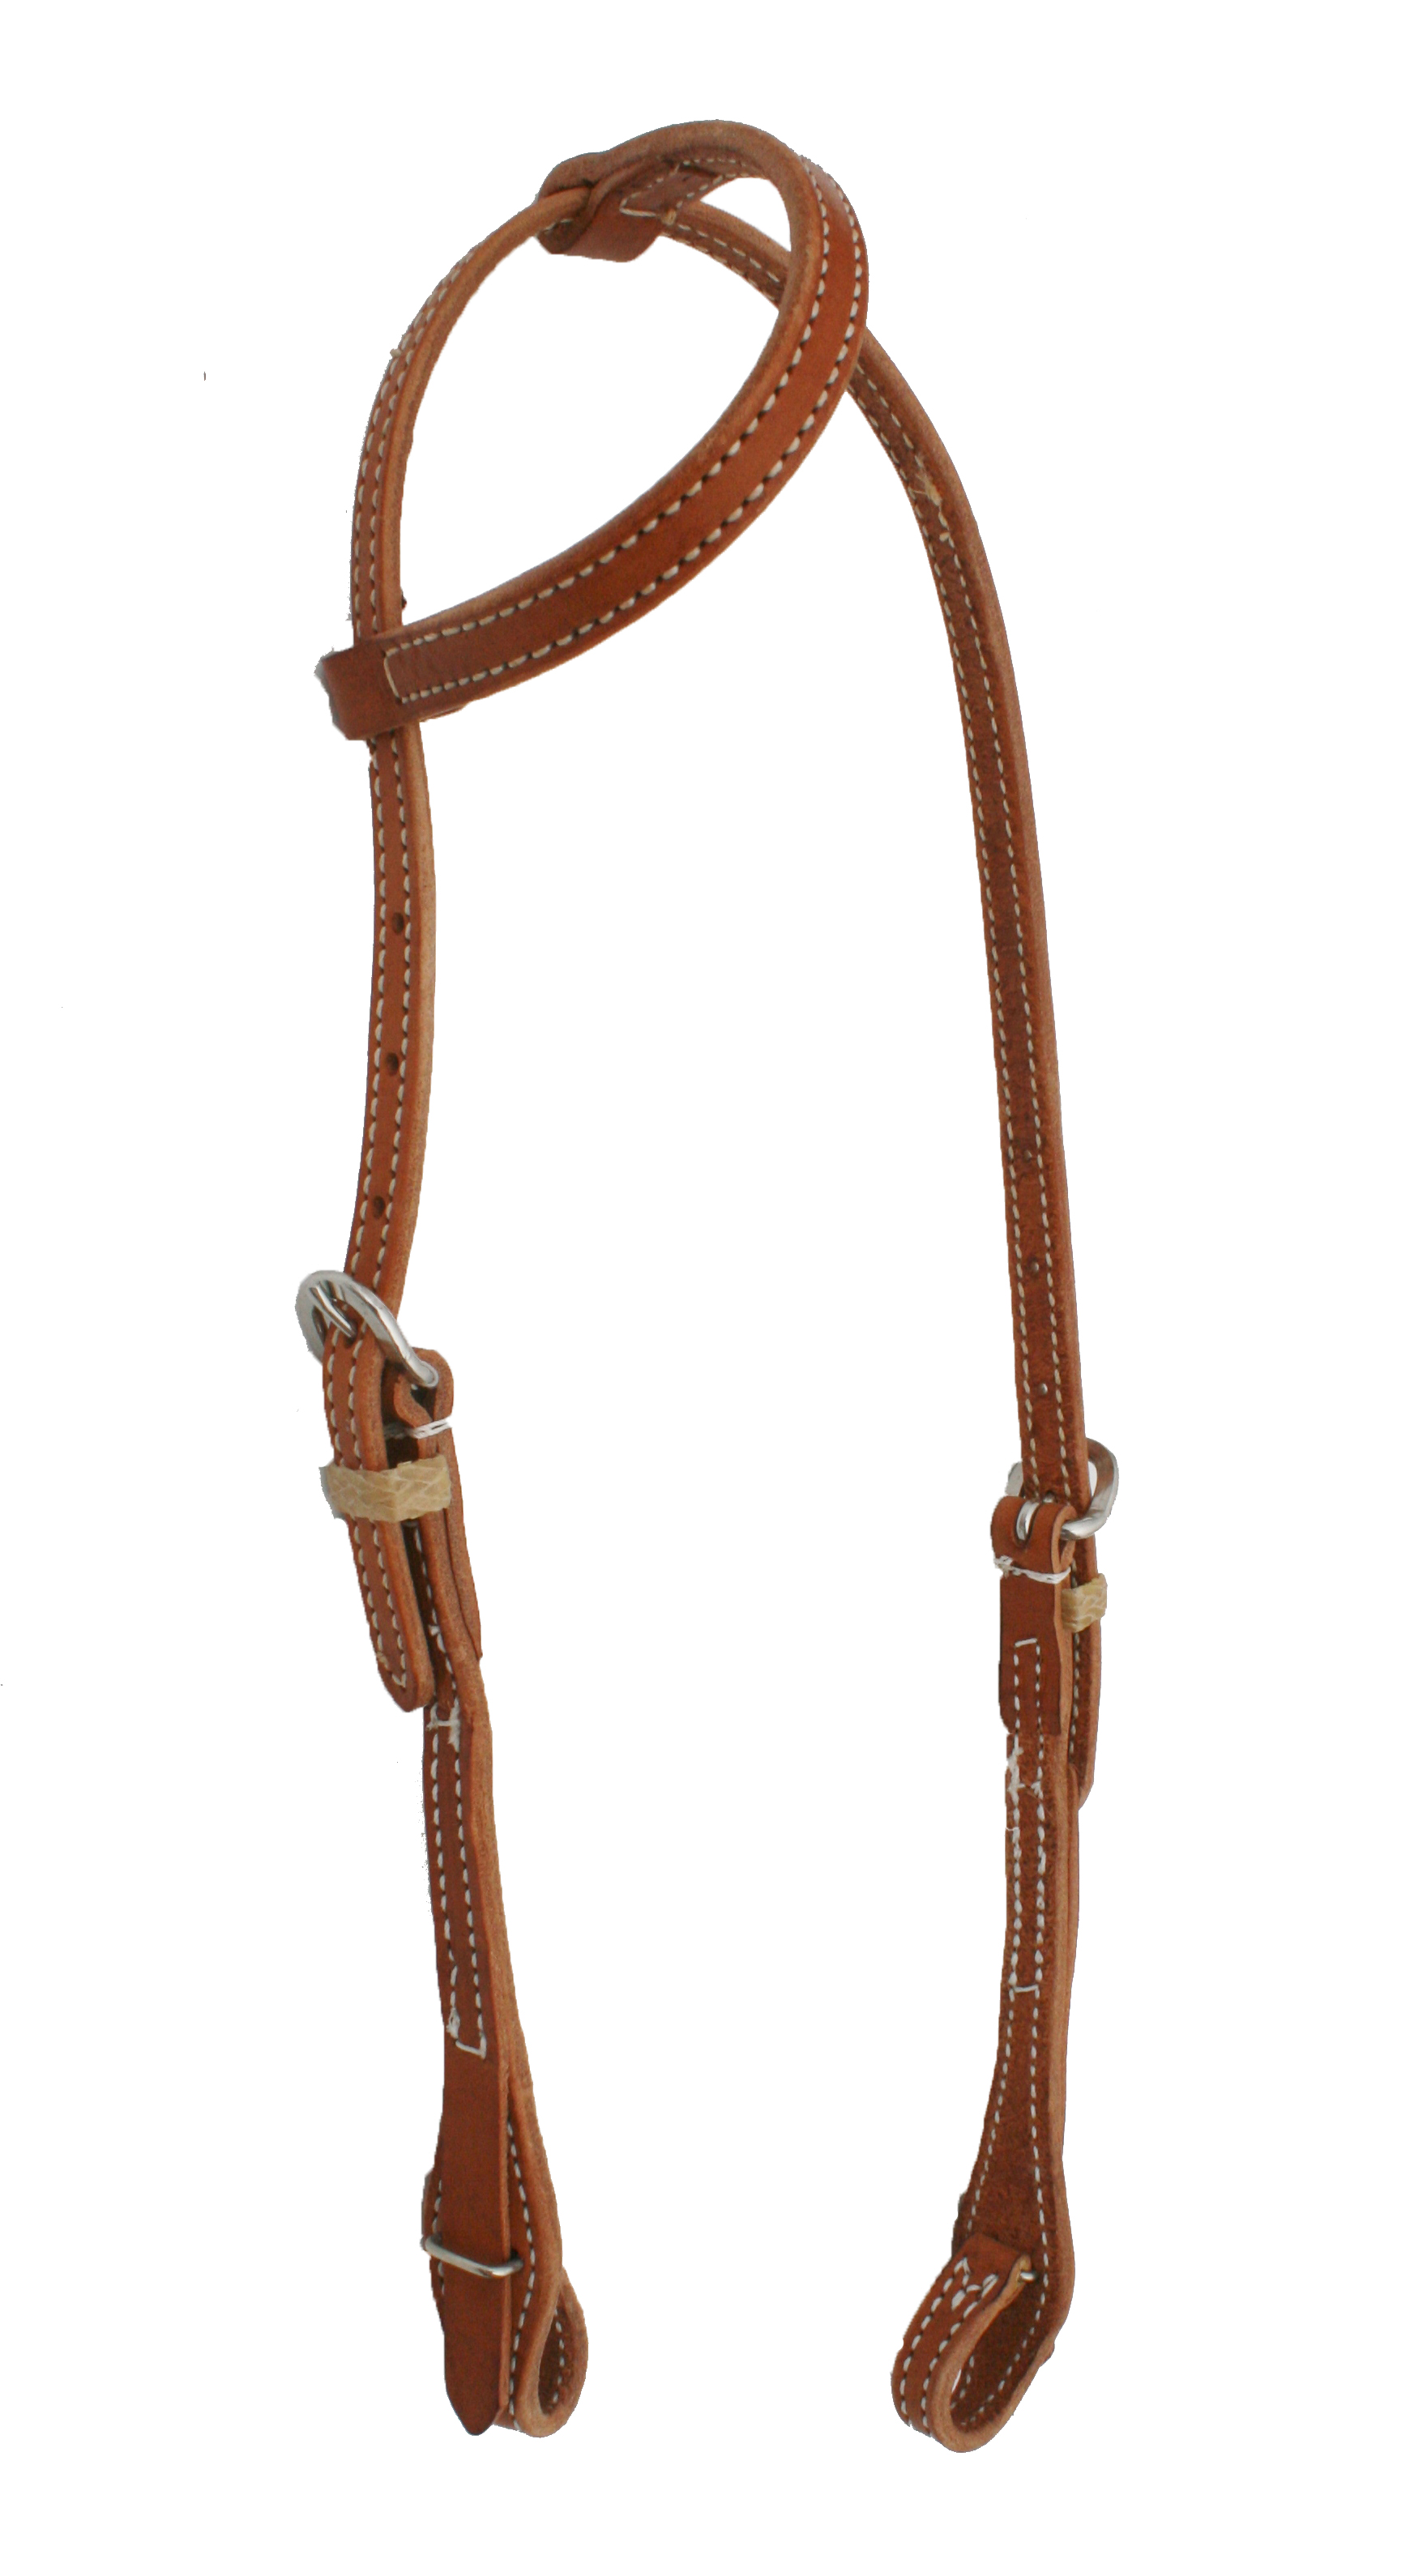 ONE EAR HERMAN OAK HARNESS HEADSTALL